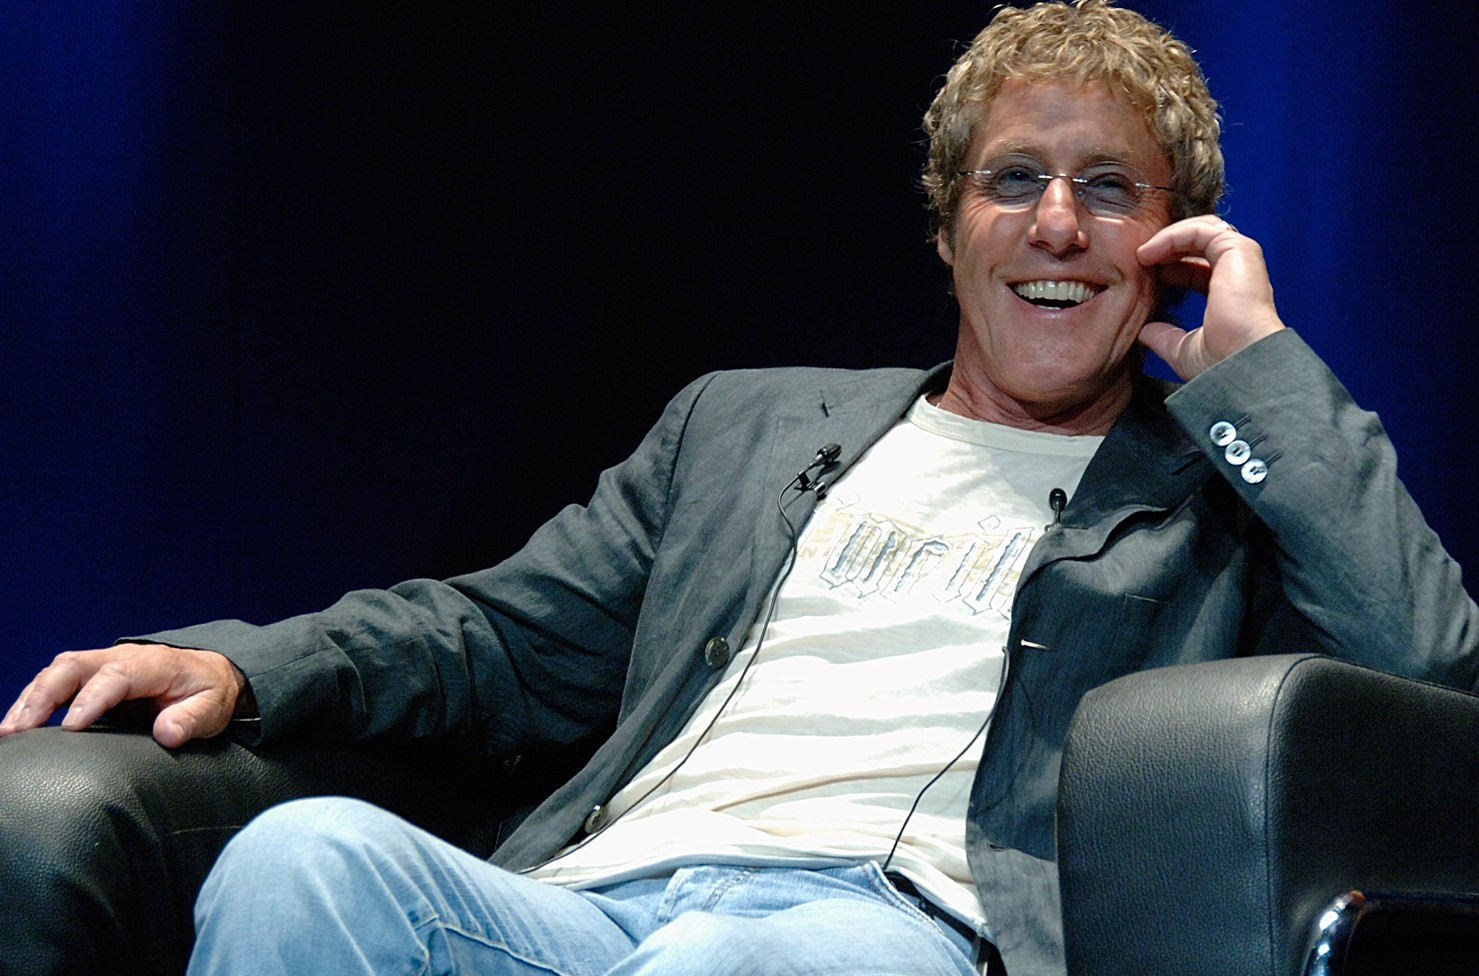 The Who Roger Daltrey attends the 56th Cannes Lions International Advertising Festival on June 25, 2009 in Cannes, France.